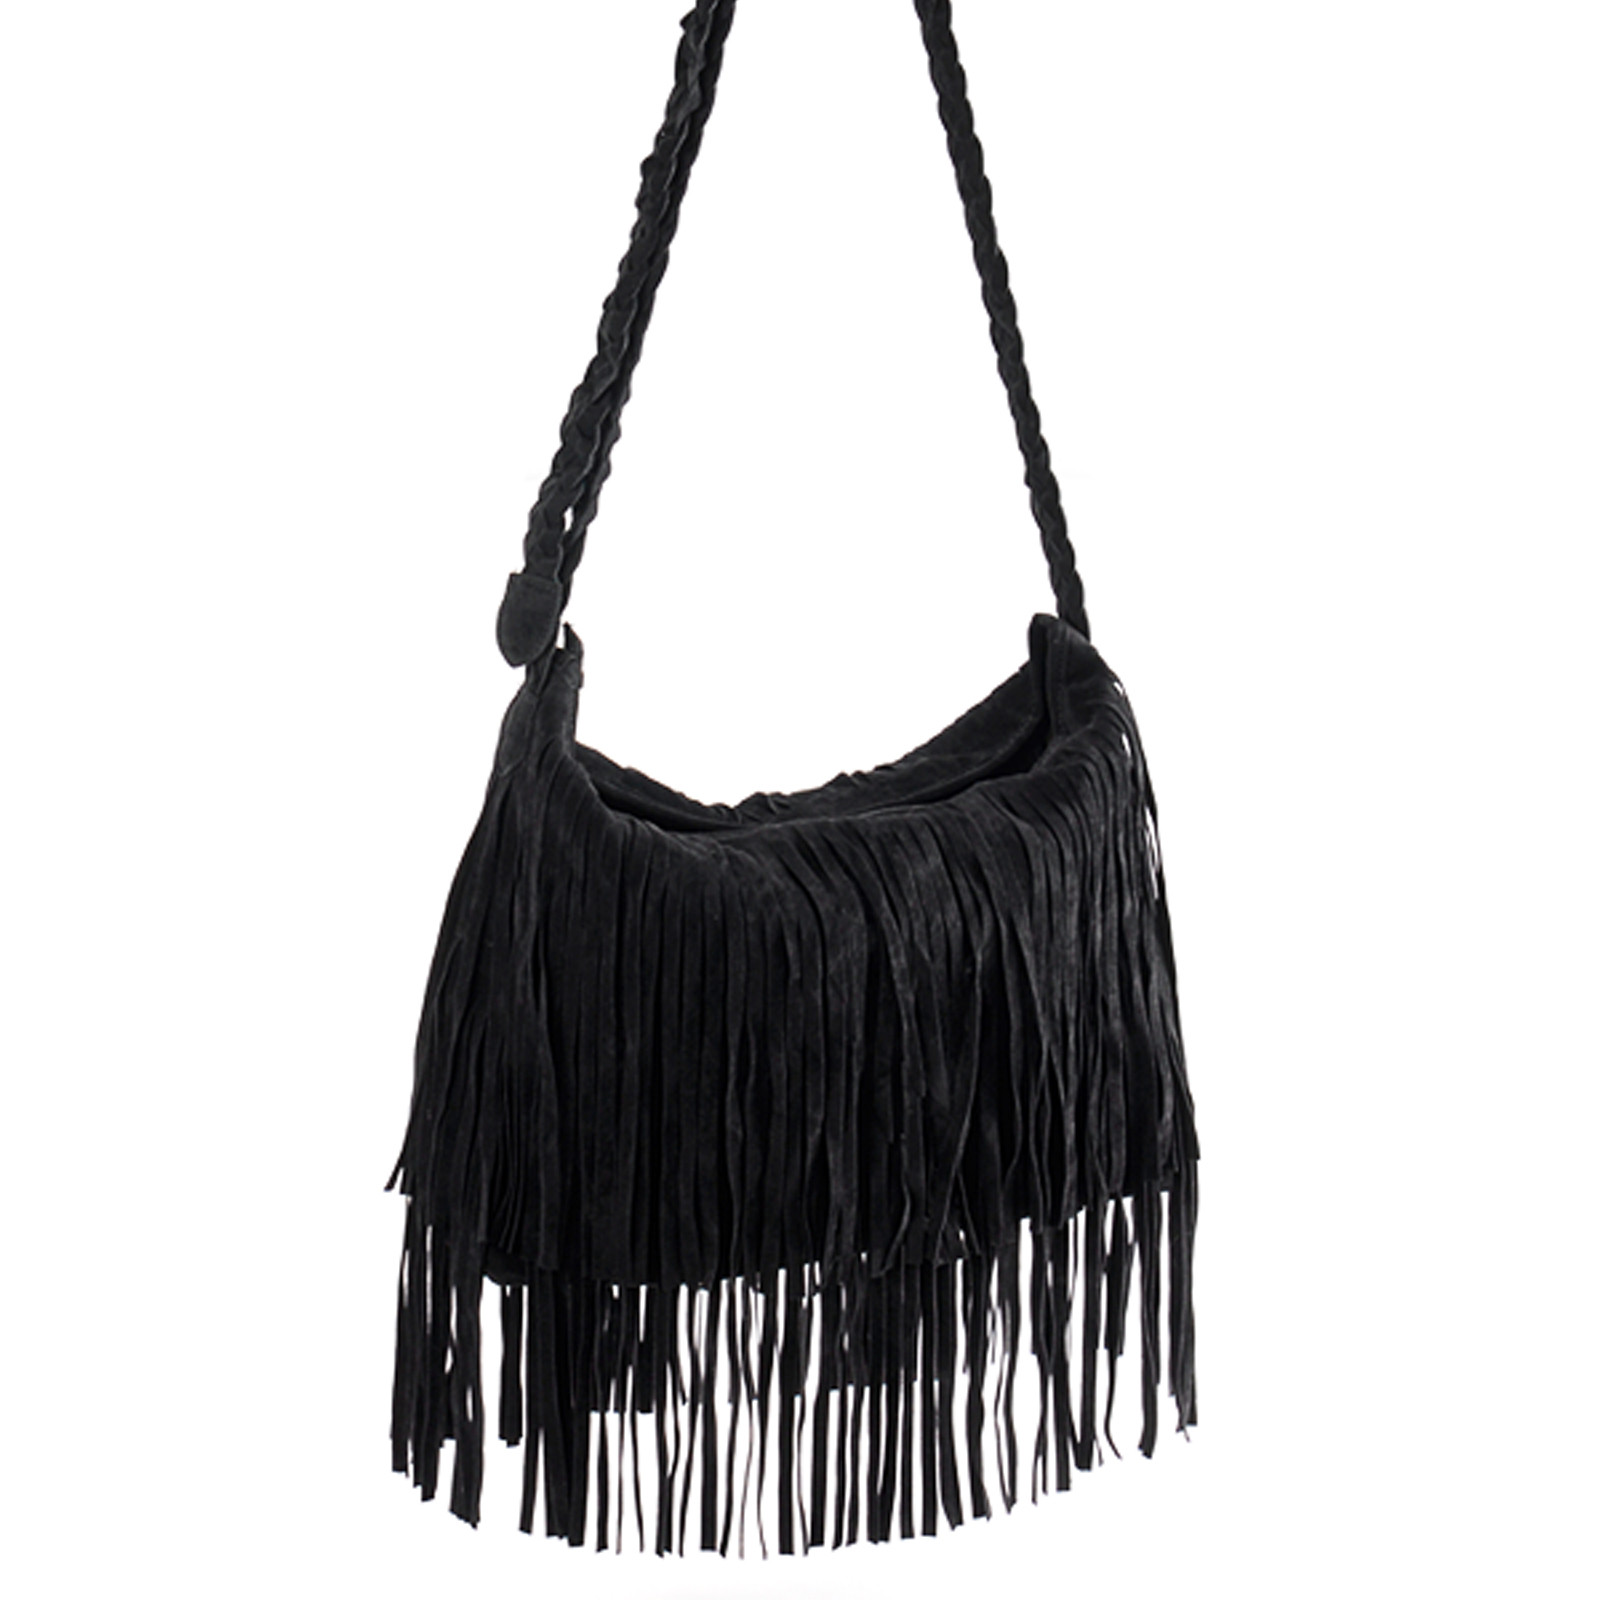 New Black Celebrity Fringe Tassel Shoulder Messenger Bag ...